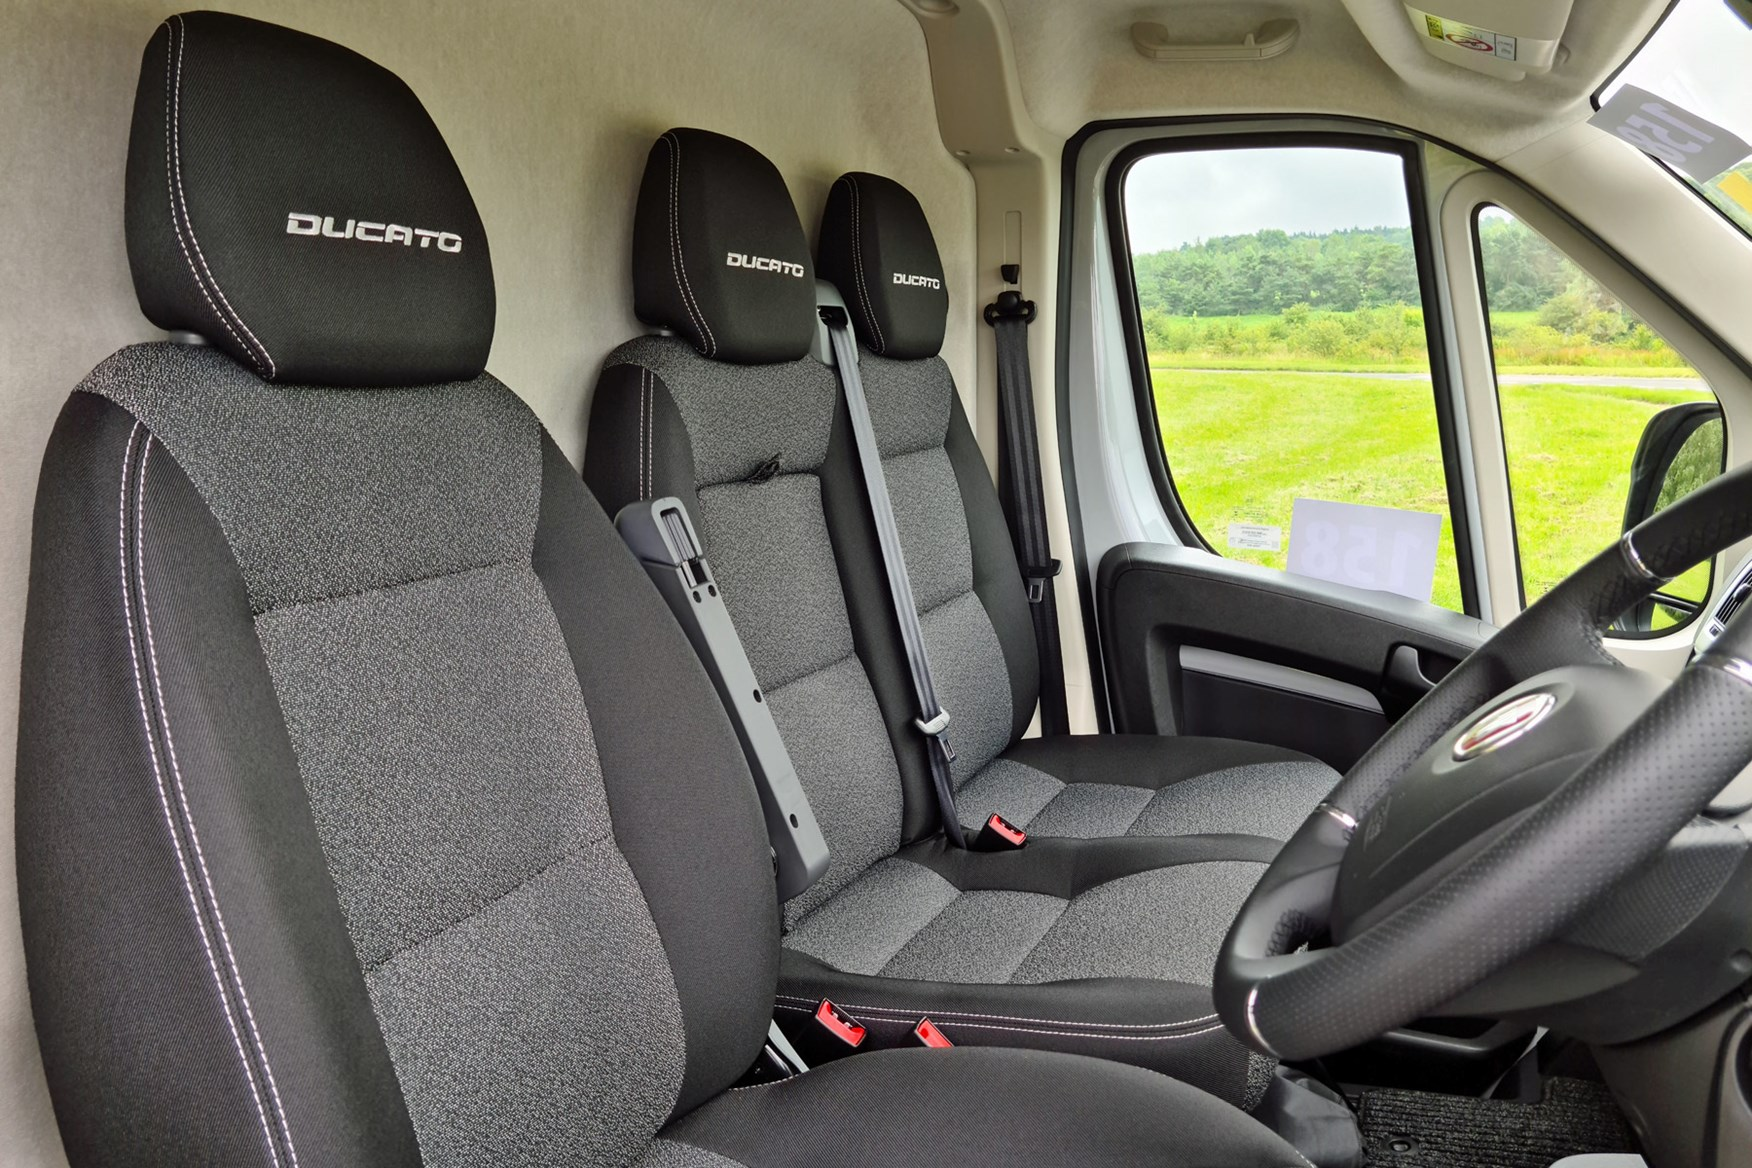 Fiat E-Ducato review - eTecnico seats with headrest embroidery